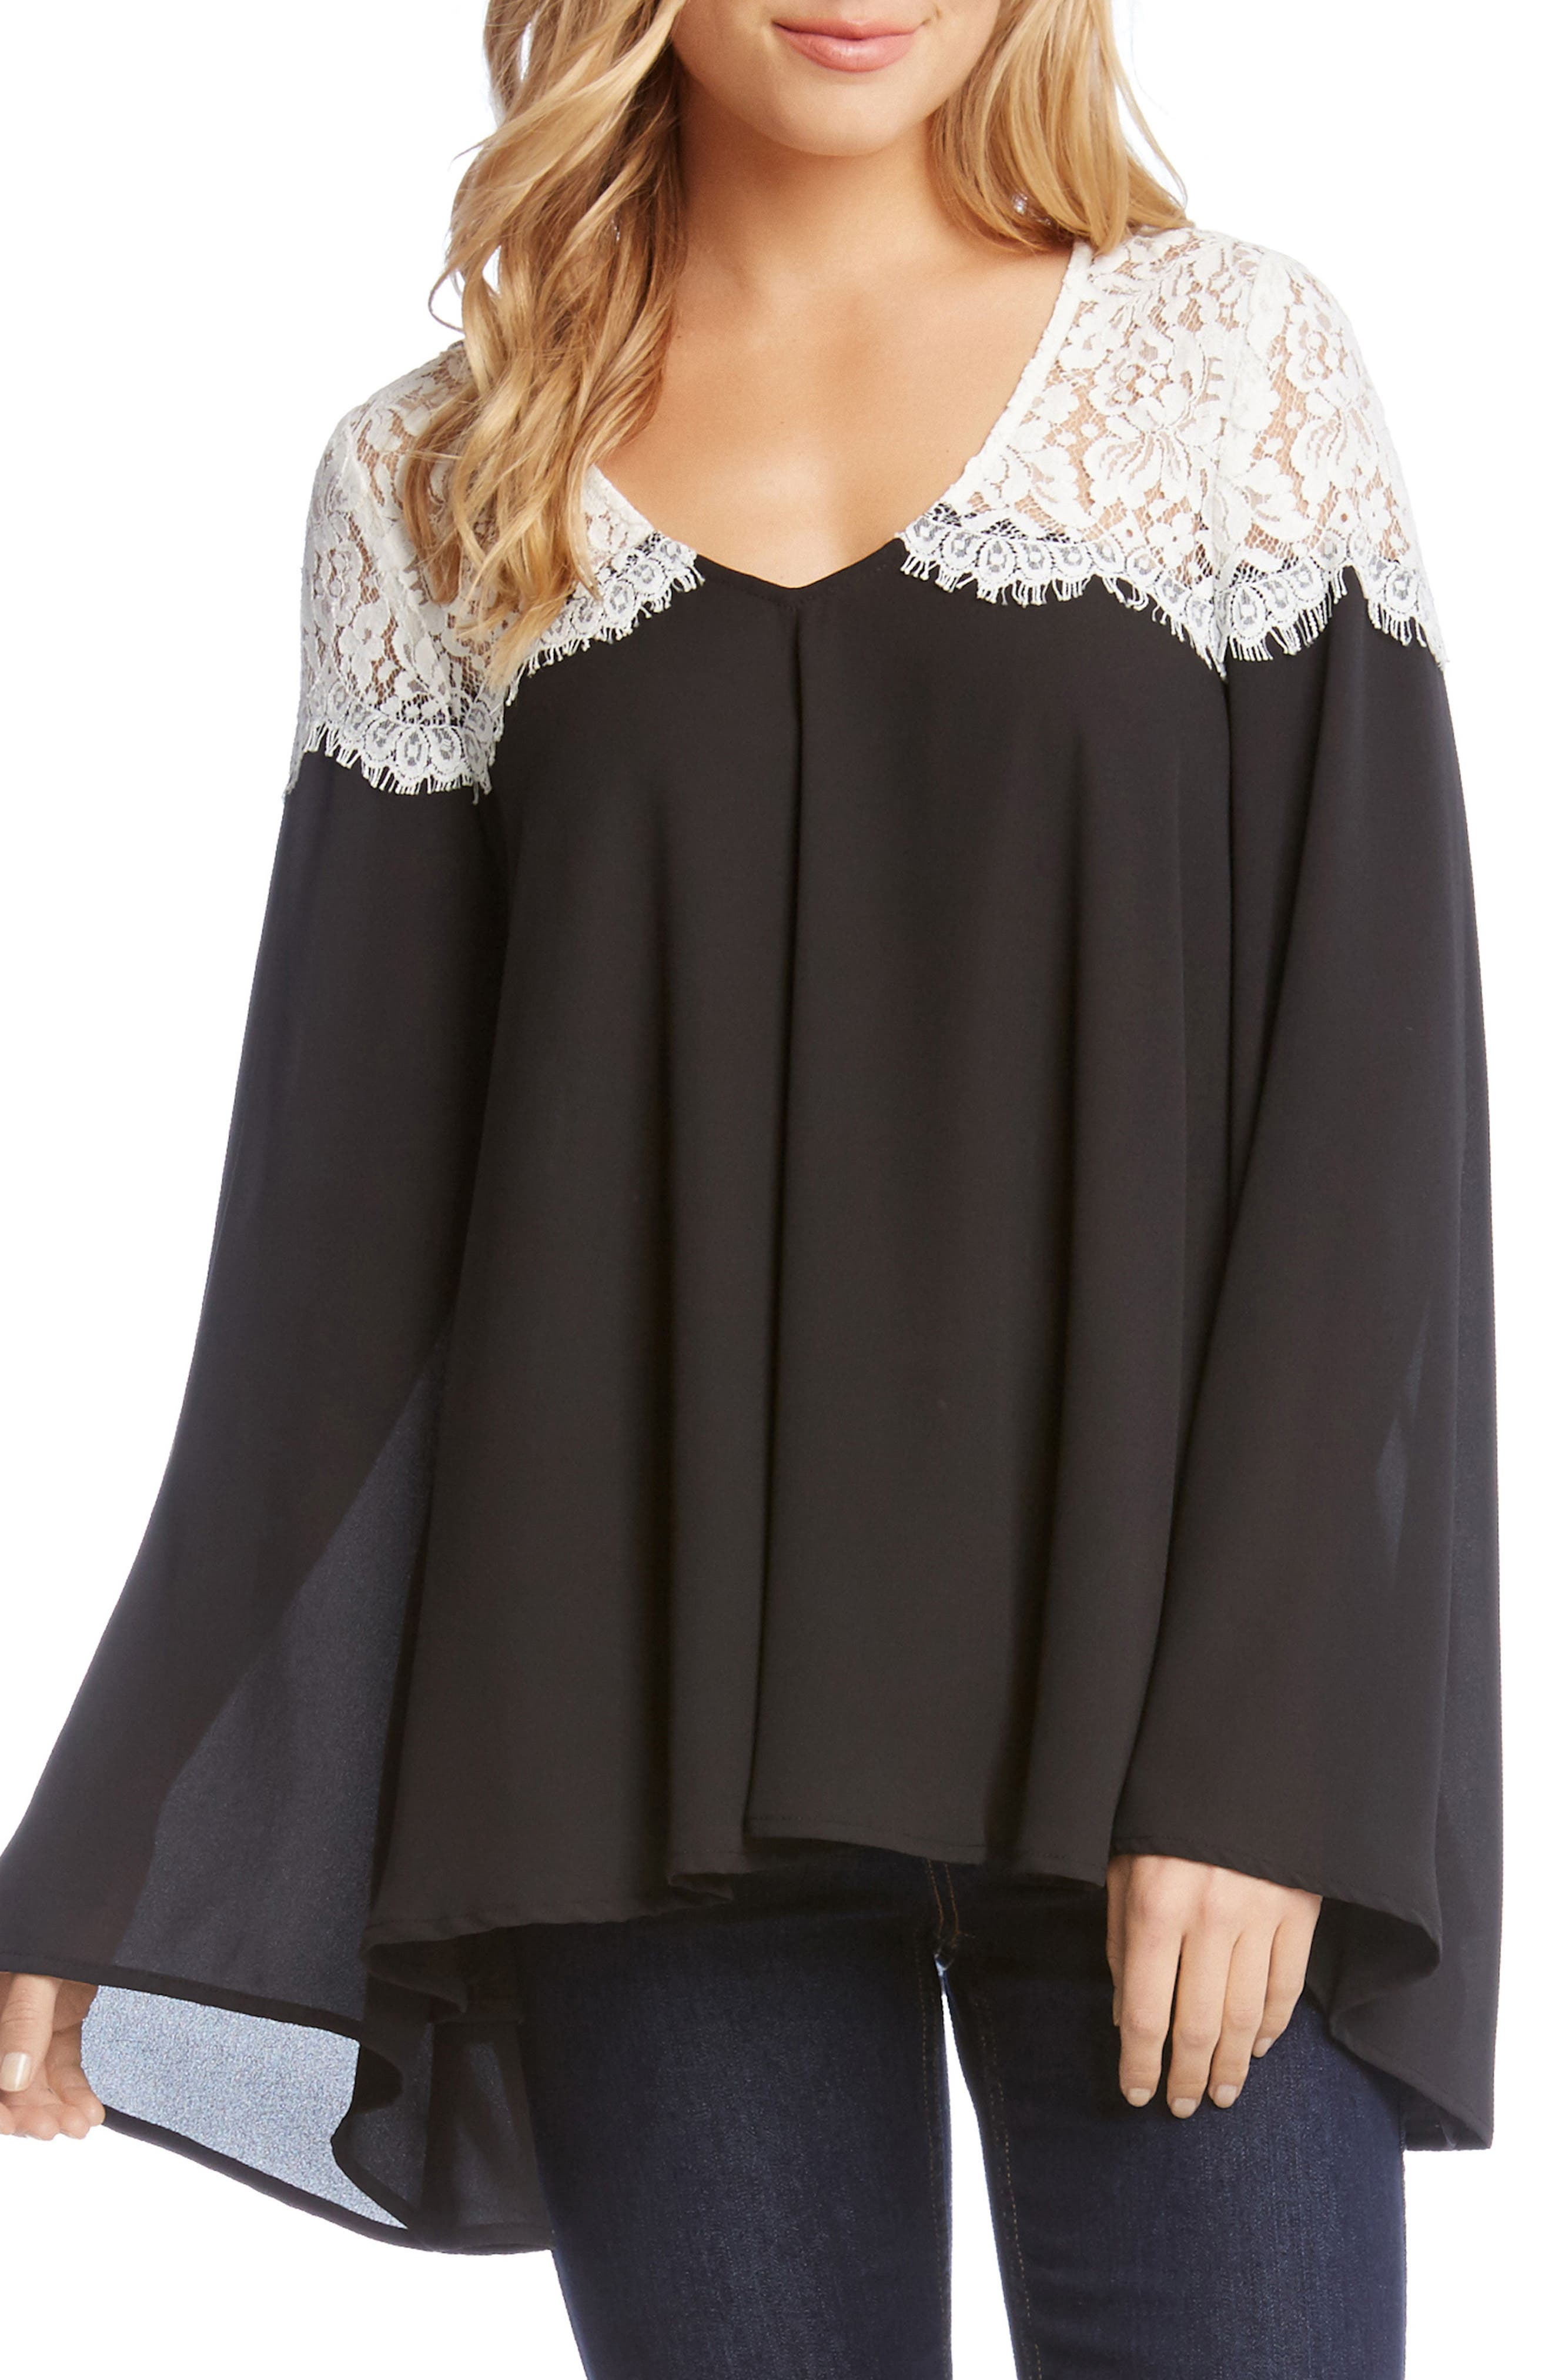 Main Image - Karen Kane Contrast Lace Bell Sleeve Top